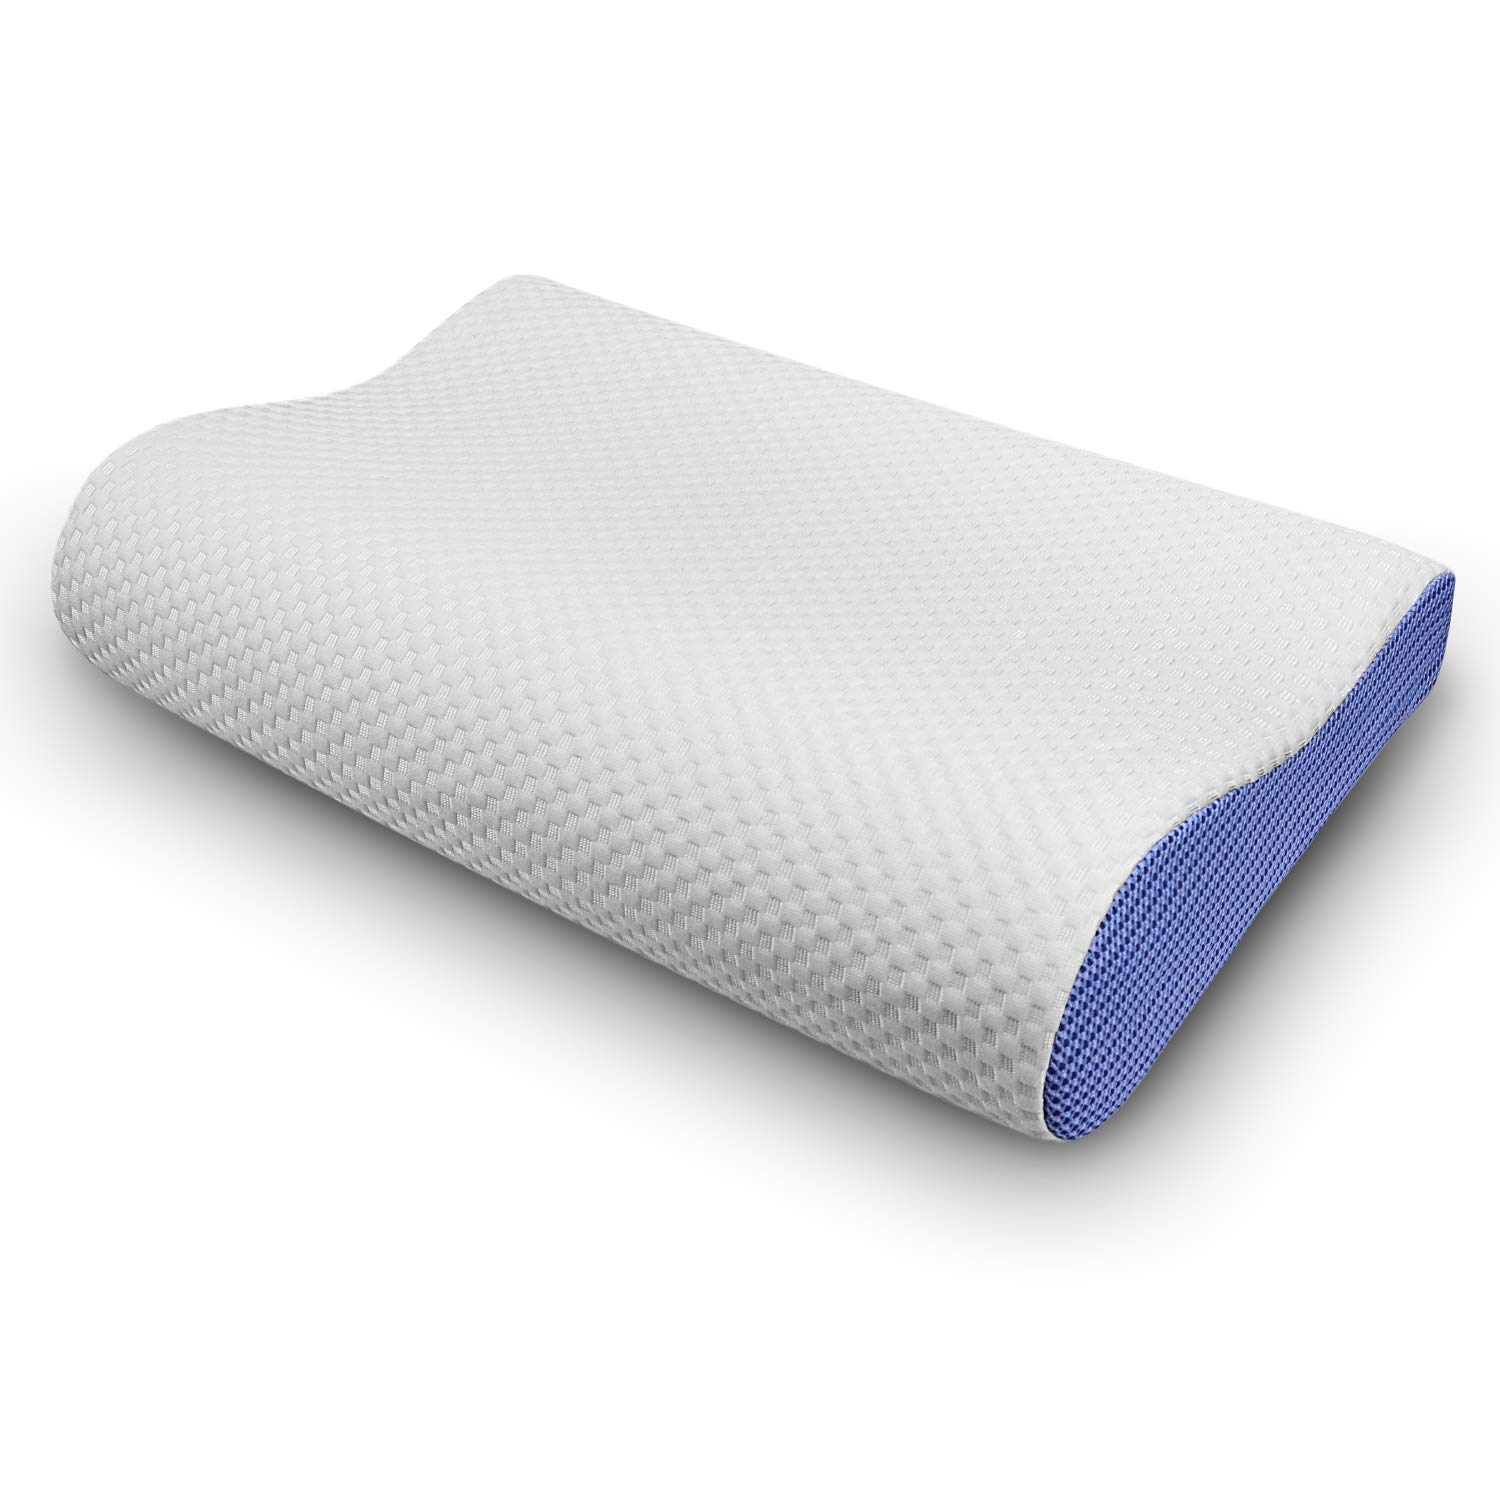 ESEOE Memory Foam Pillow,Orthopedic Contour Pillow for Sleeping,Cervical Side Sleeper Pillow for Relief Neck and Shoulder Pain (Standard)